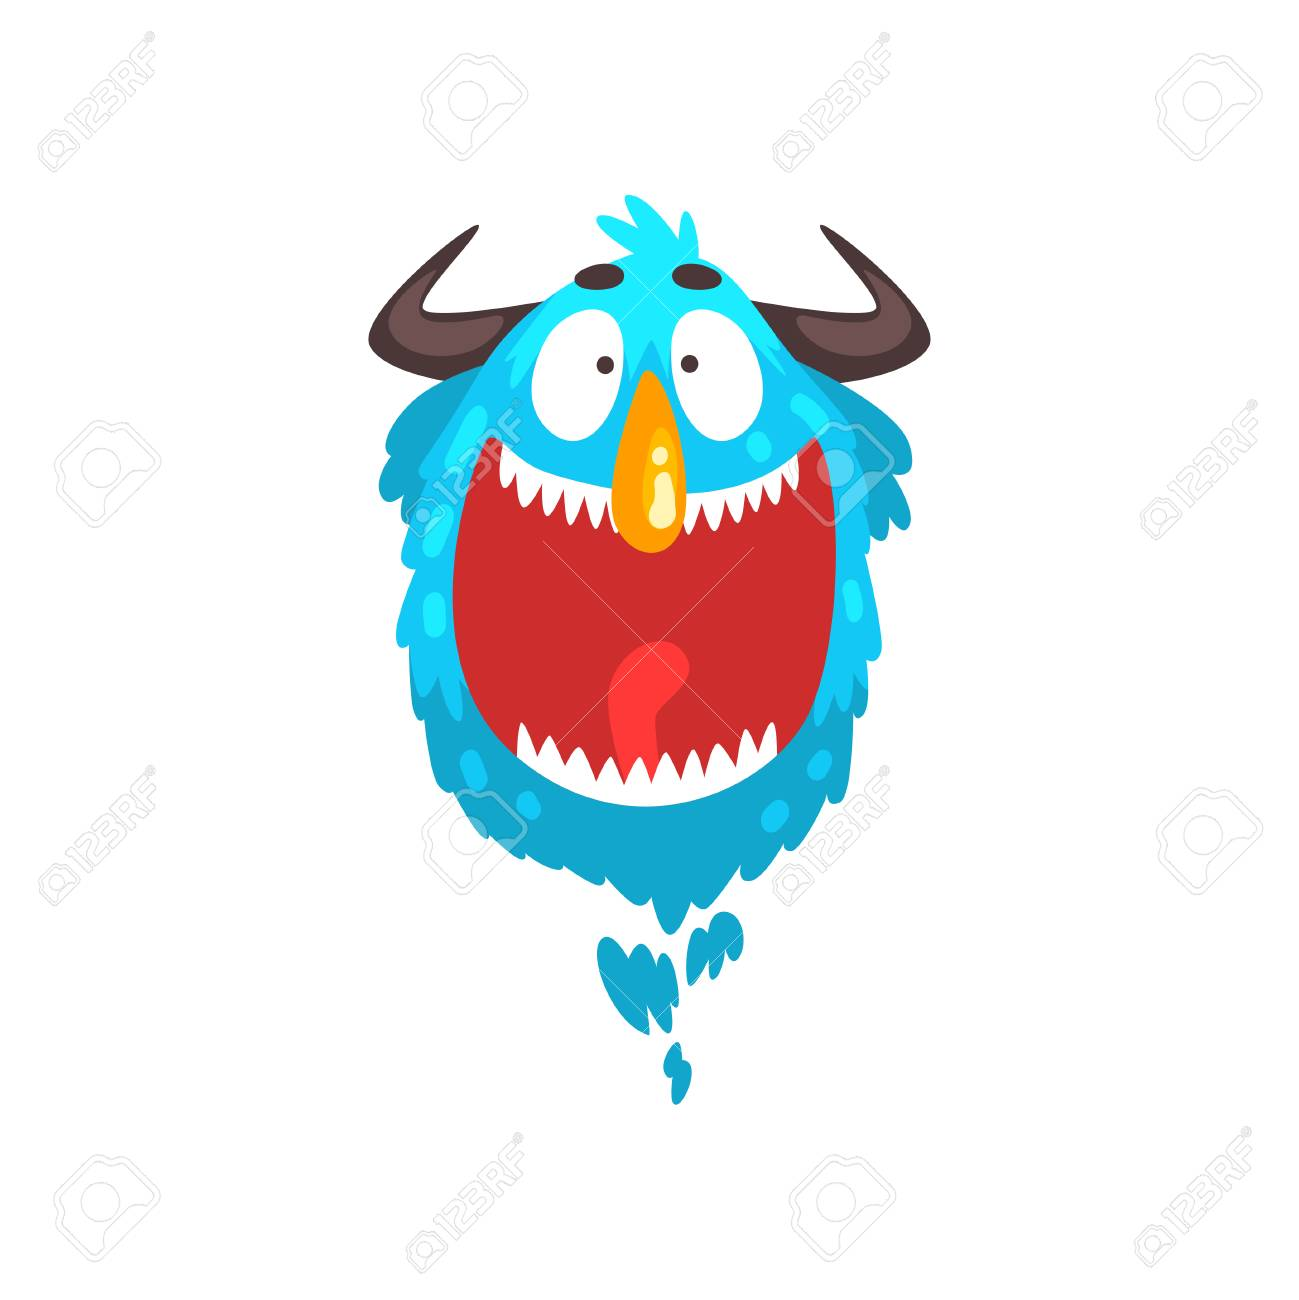 Funny horned monster, colorful fabulous cartoon creature character vector Illustration isolated on a white background. - 126379322